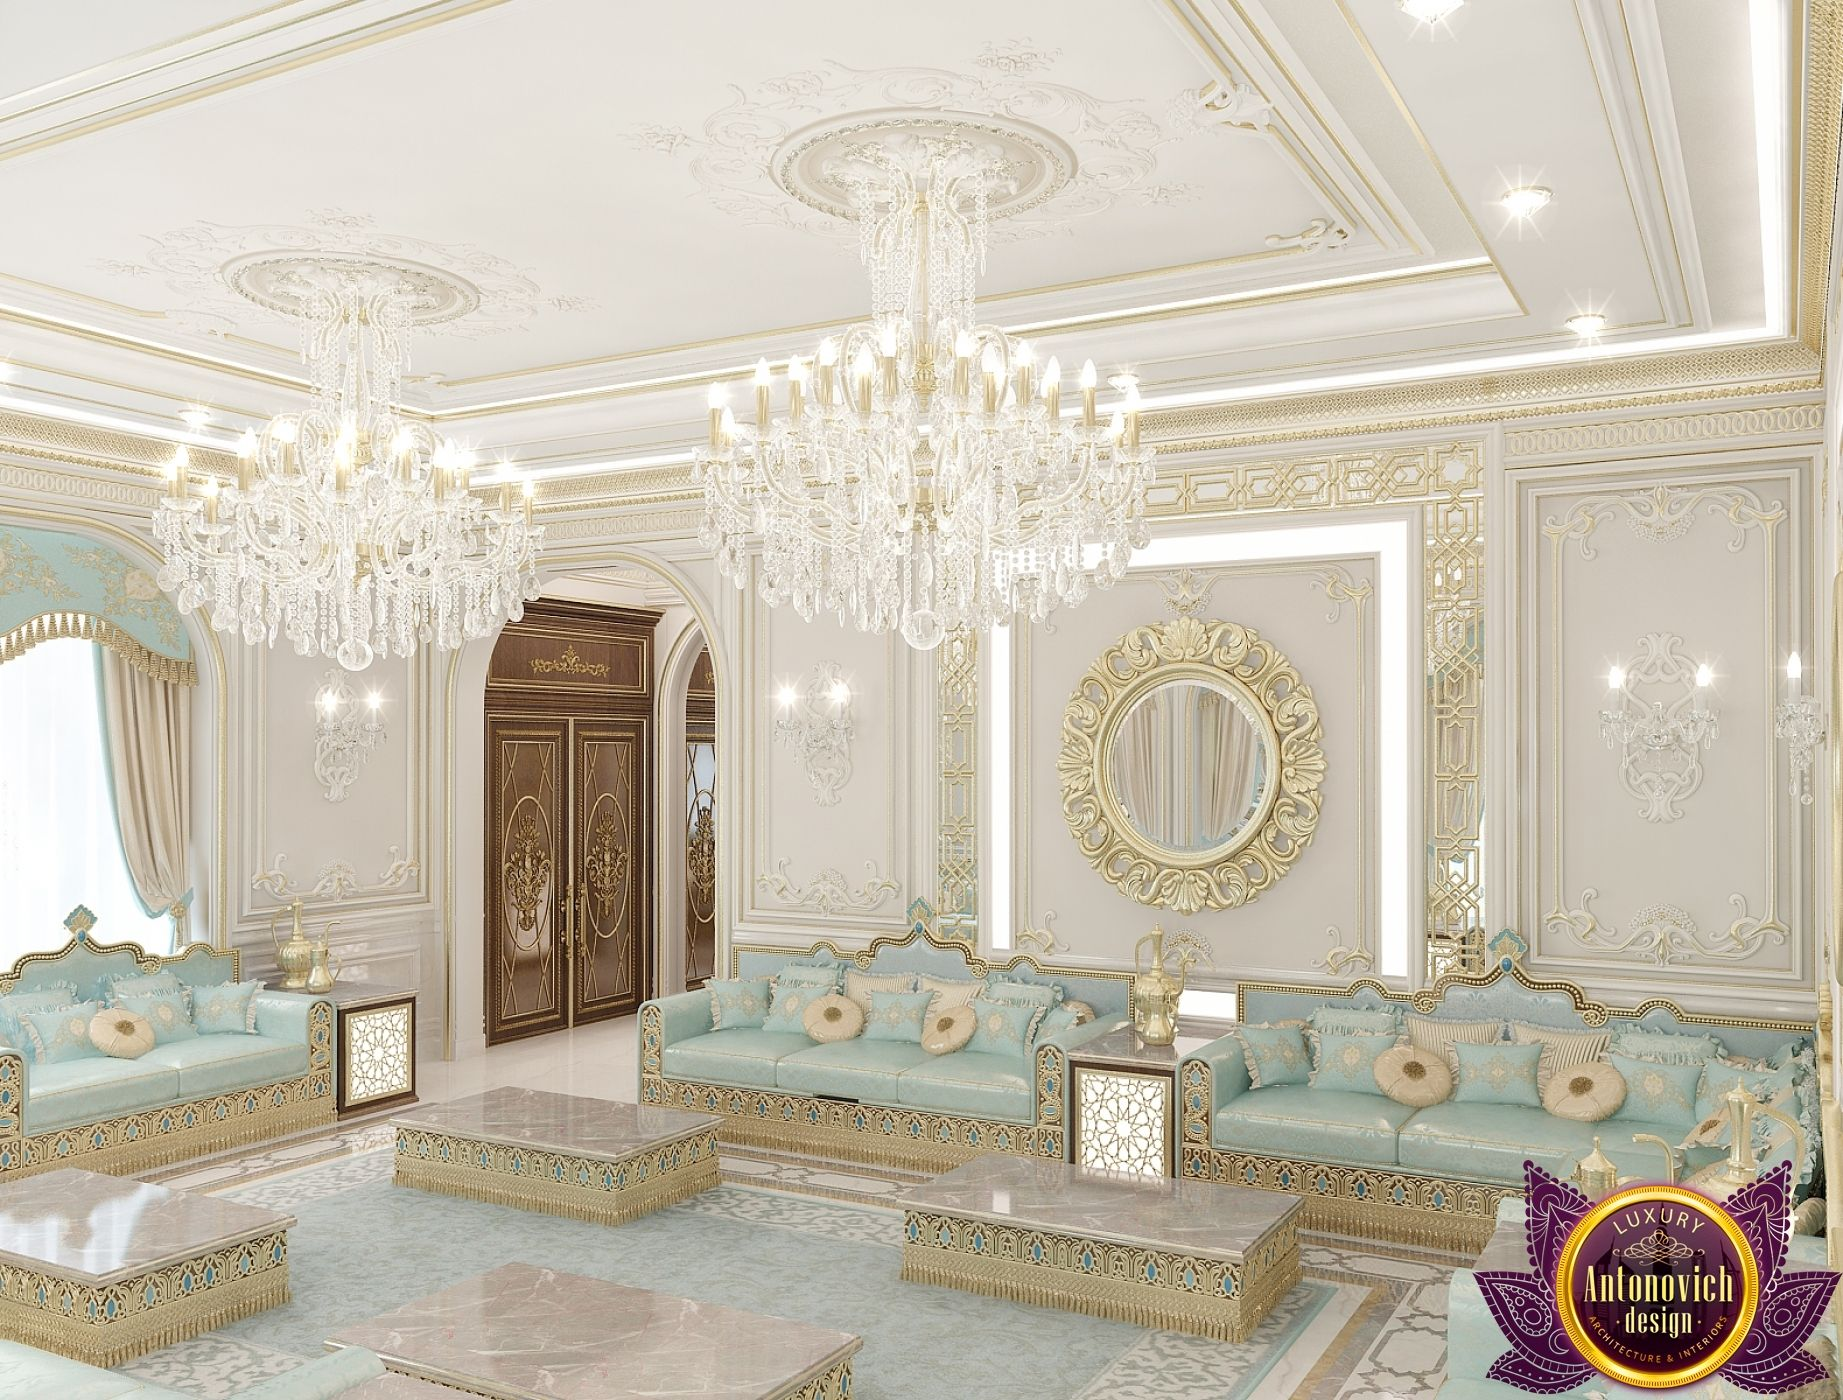 majlis interior design in dubai luxury lady majlis design. Black Bedroom Furniture Sets. Home Design Ideas